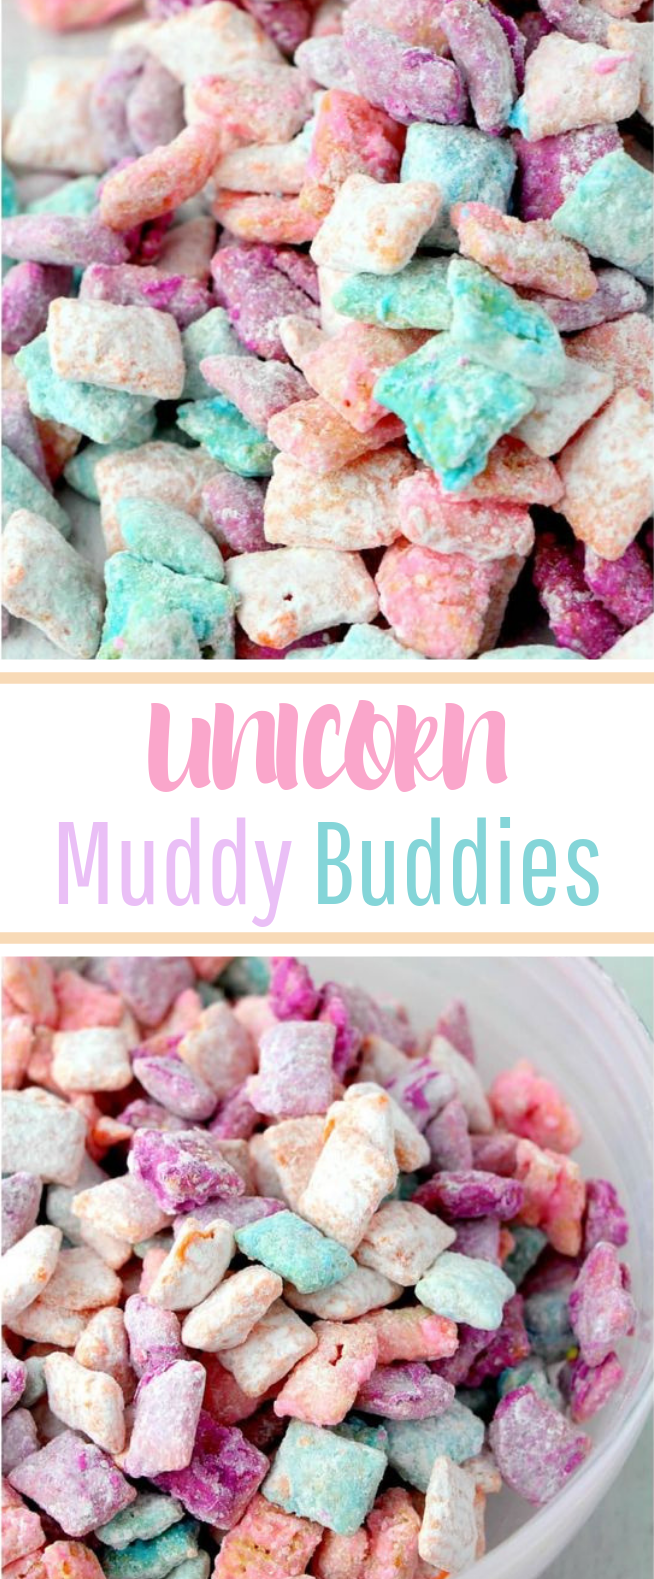 Unicorn Poop Muddy Buddies #party #desserts